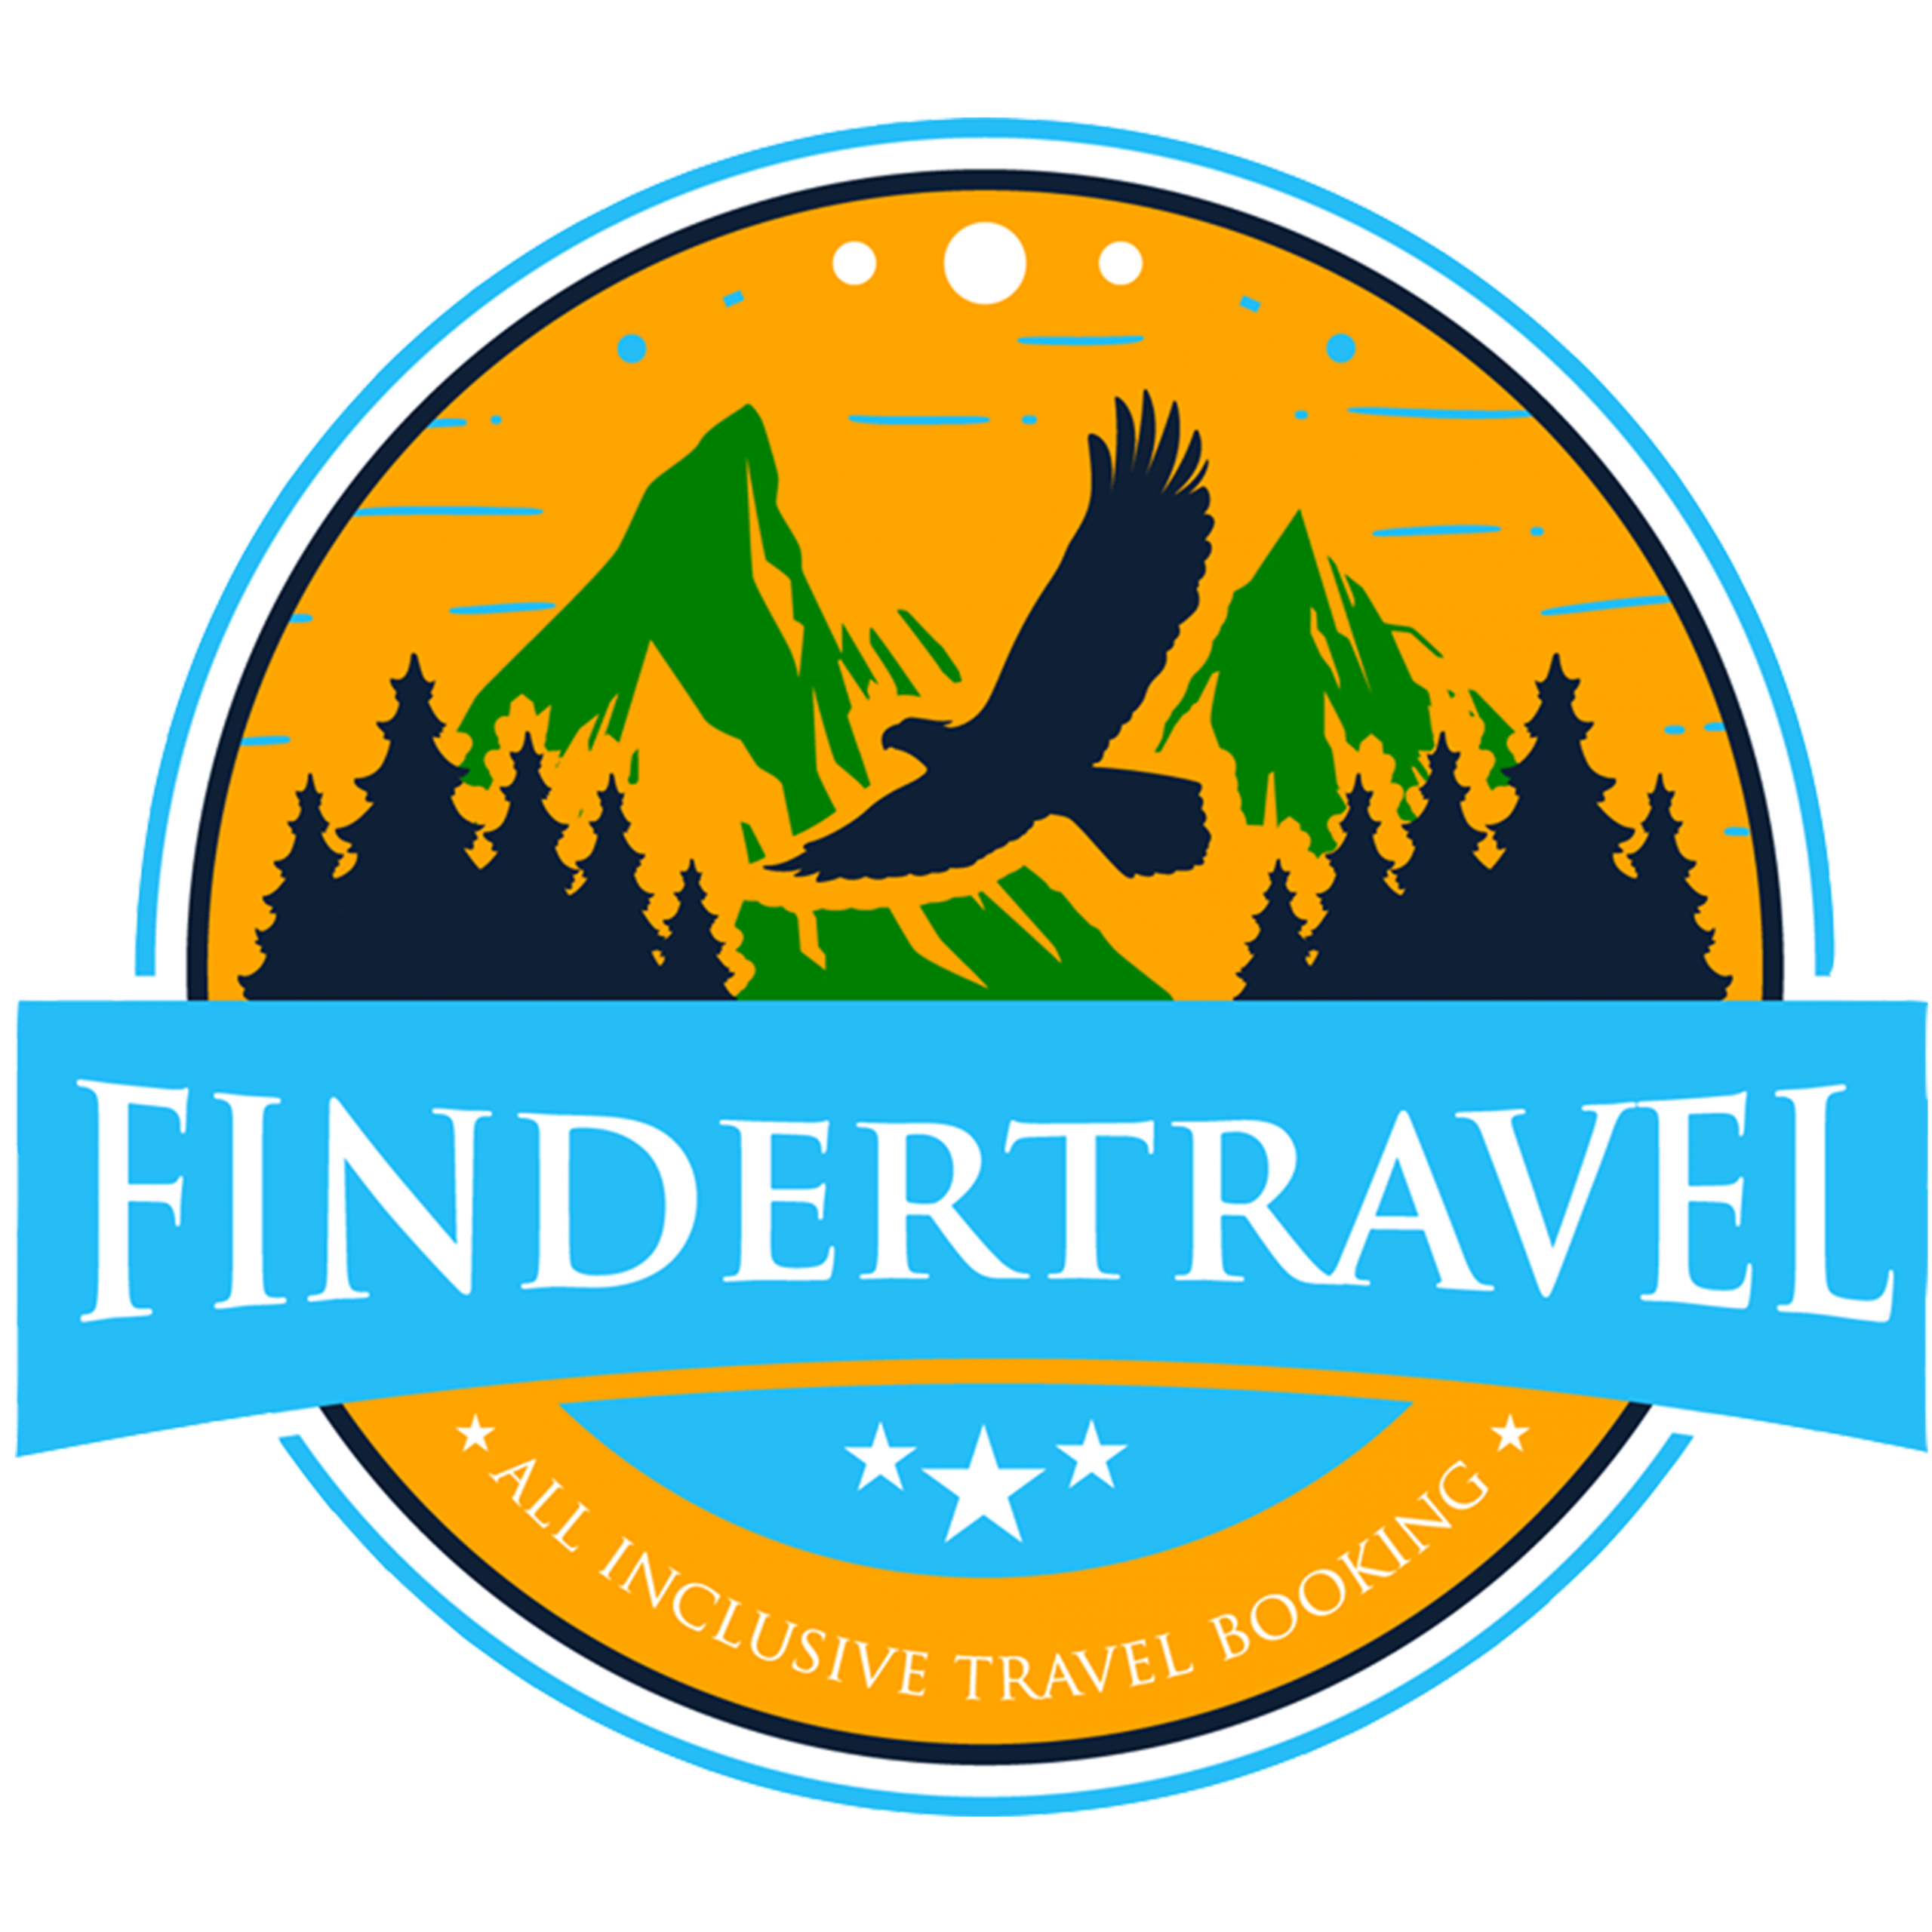 Finder Travel